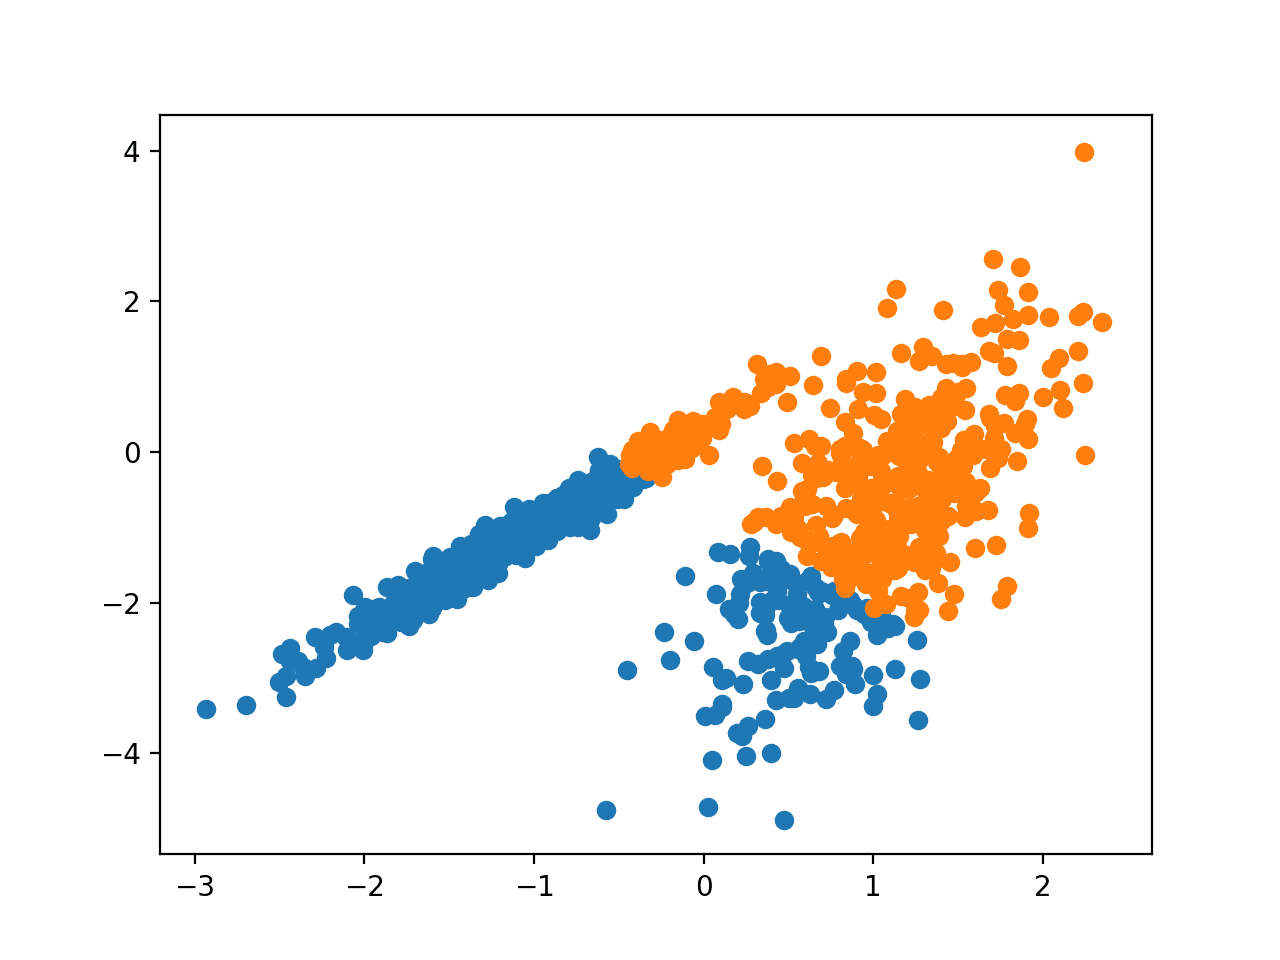 Scatter Plot of Dataset With Clusters Identified Using Mini-Batch K-Means Clustering